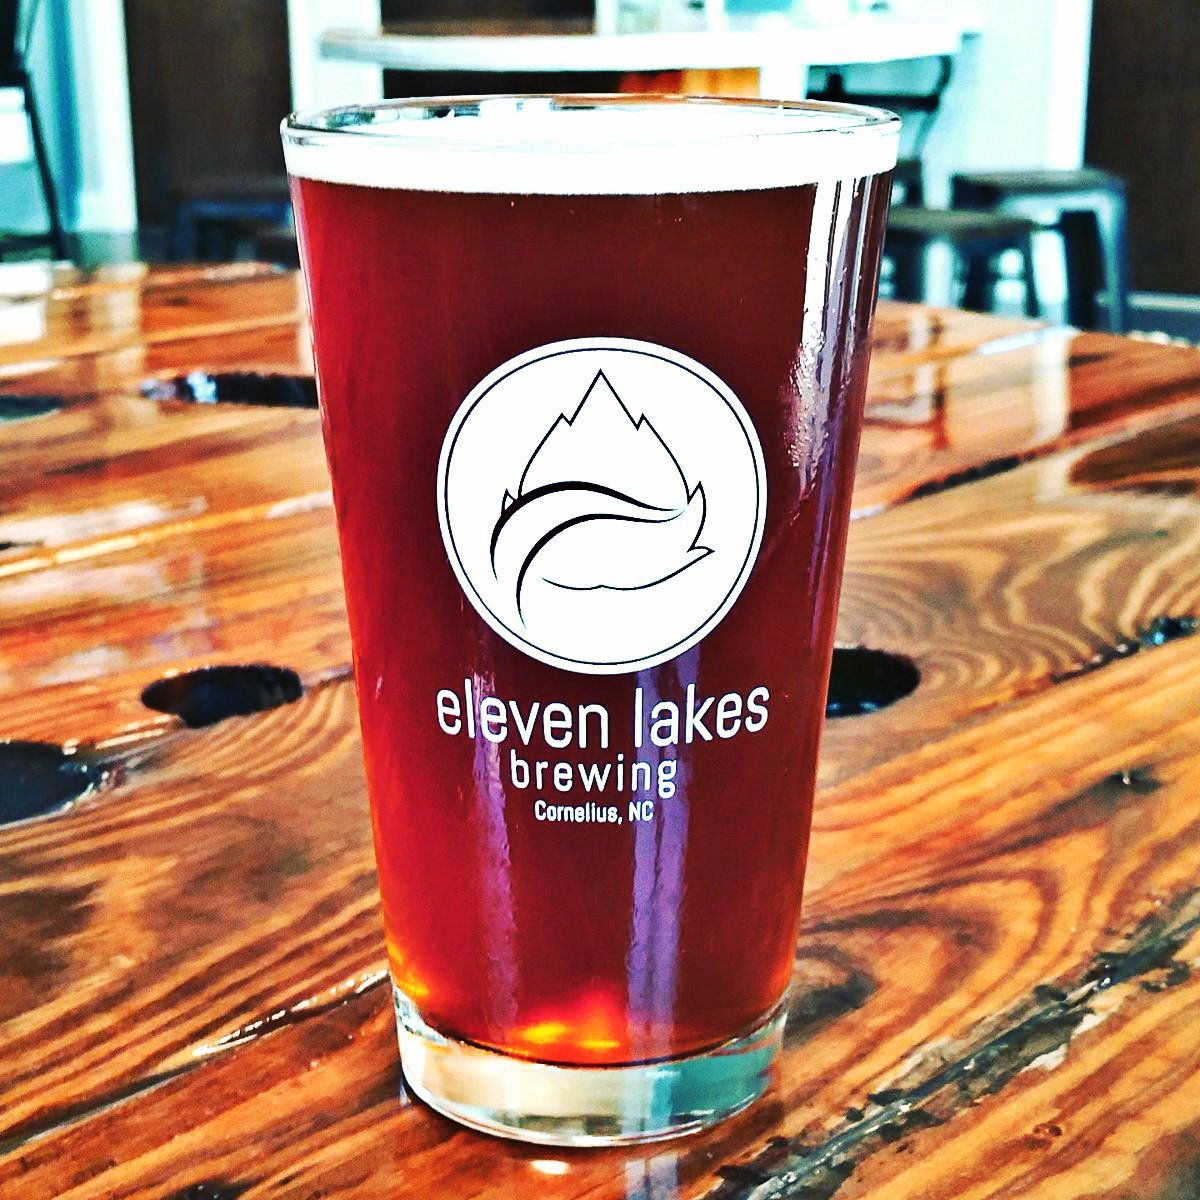 Wednesday Night Is Pint Night Come Out And Enjoy 4 Pints All Day Taproom Opens At 4 Drinklocal Localbrew Ncbeer Craftbeer Craft Beer Beer Local Beer